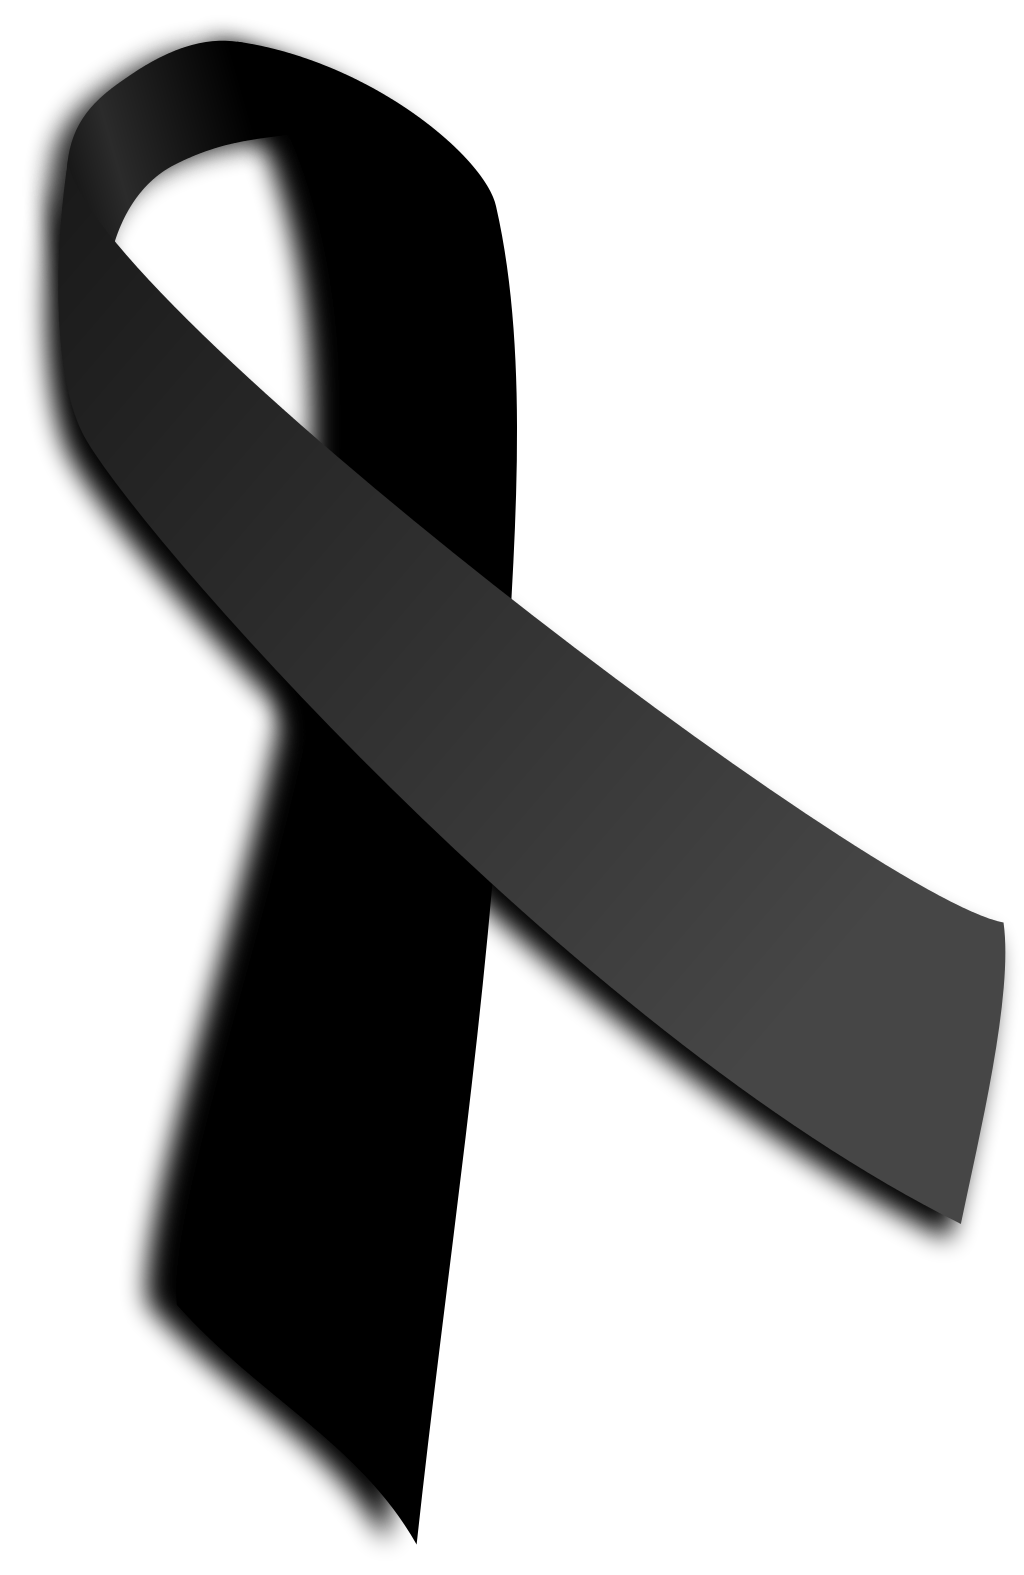 black.ribbon.png